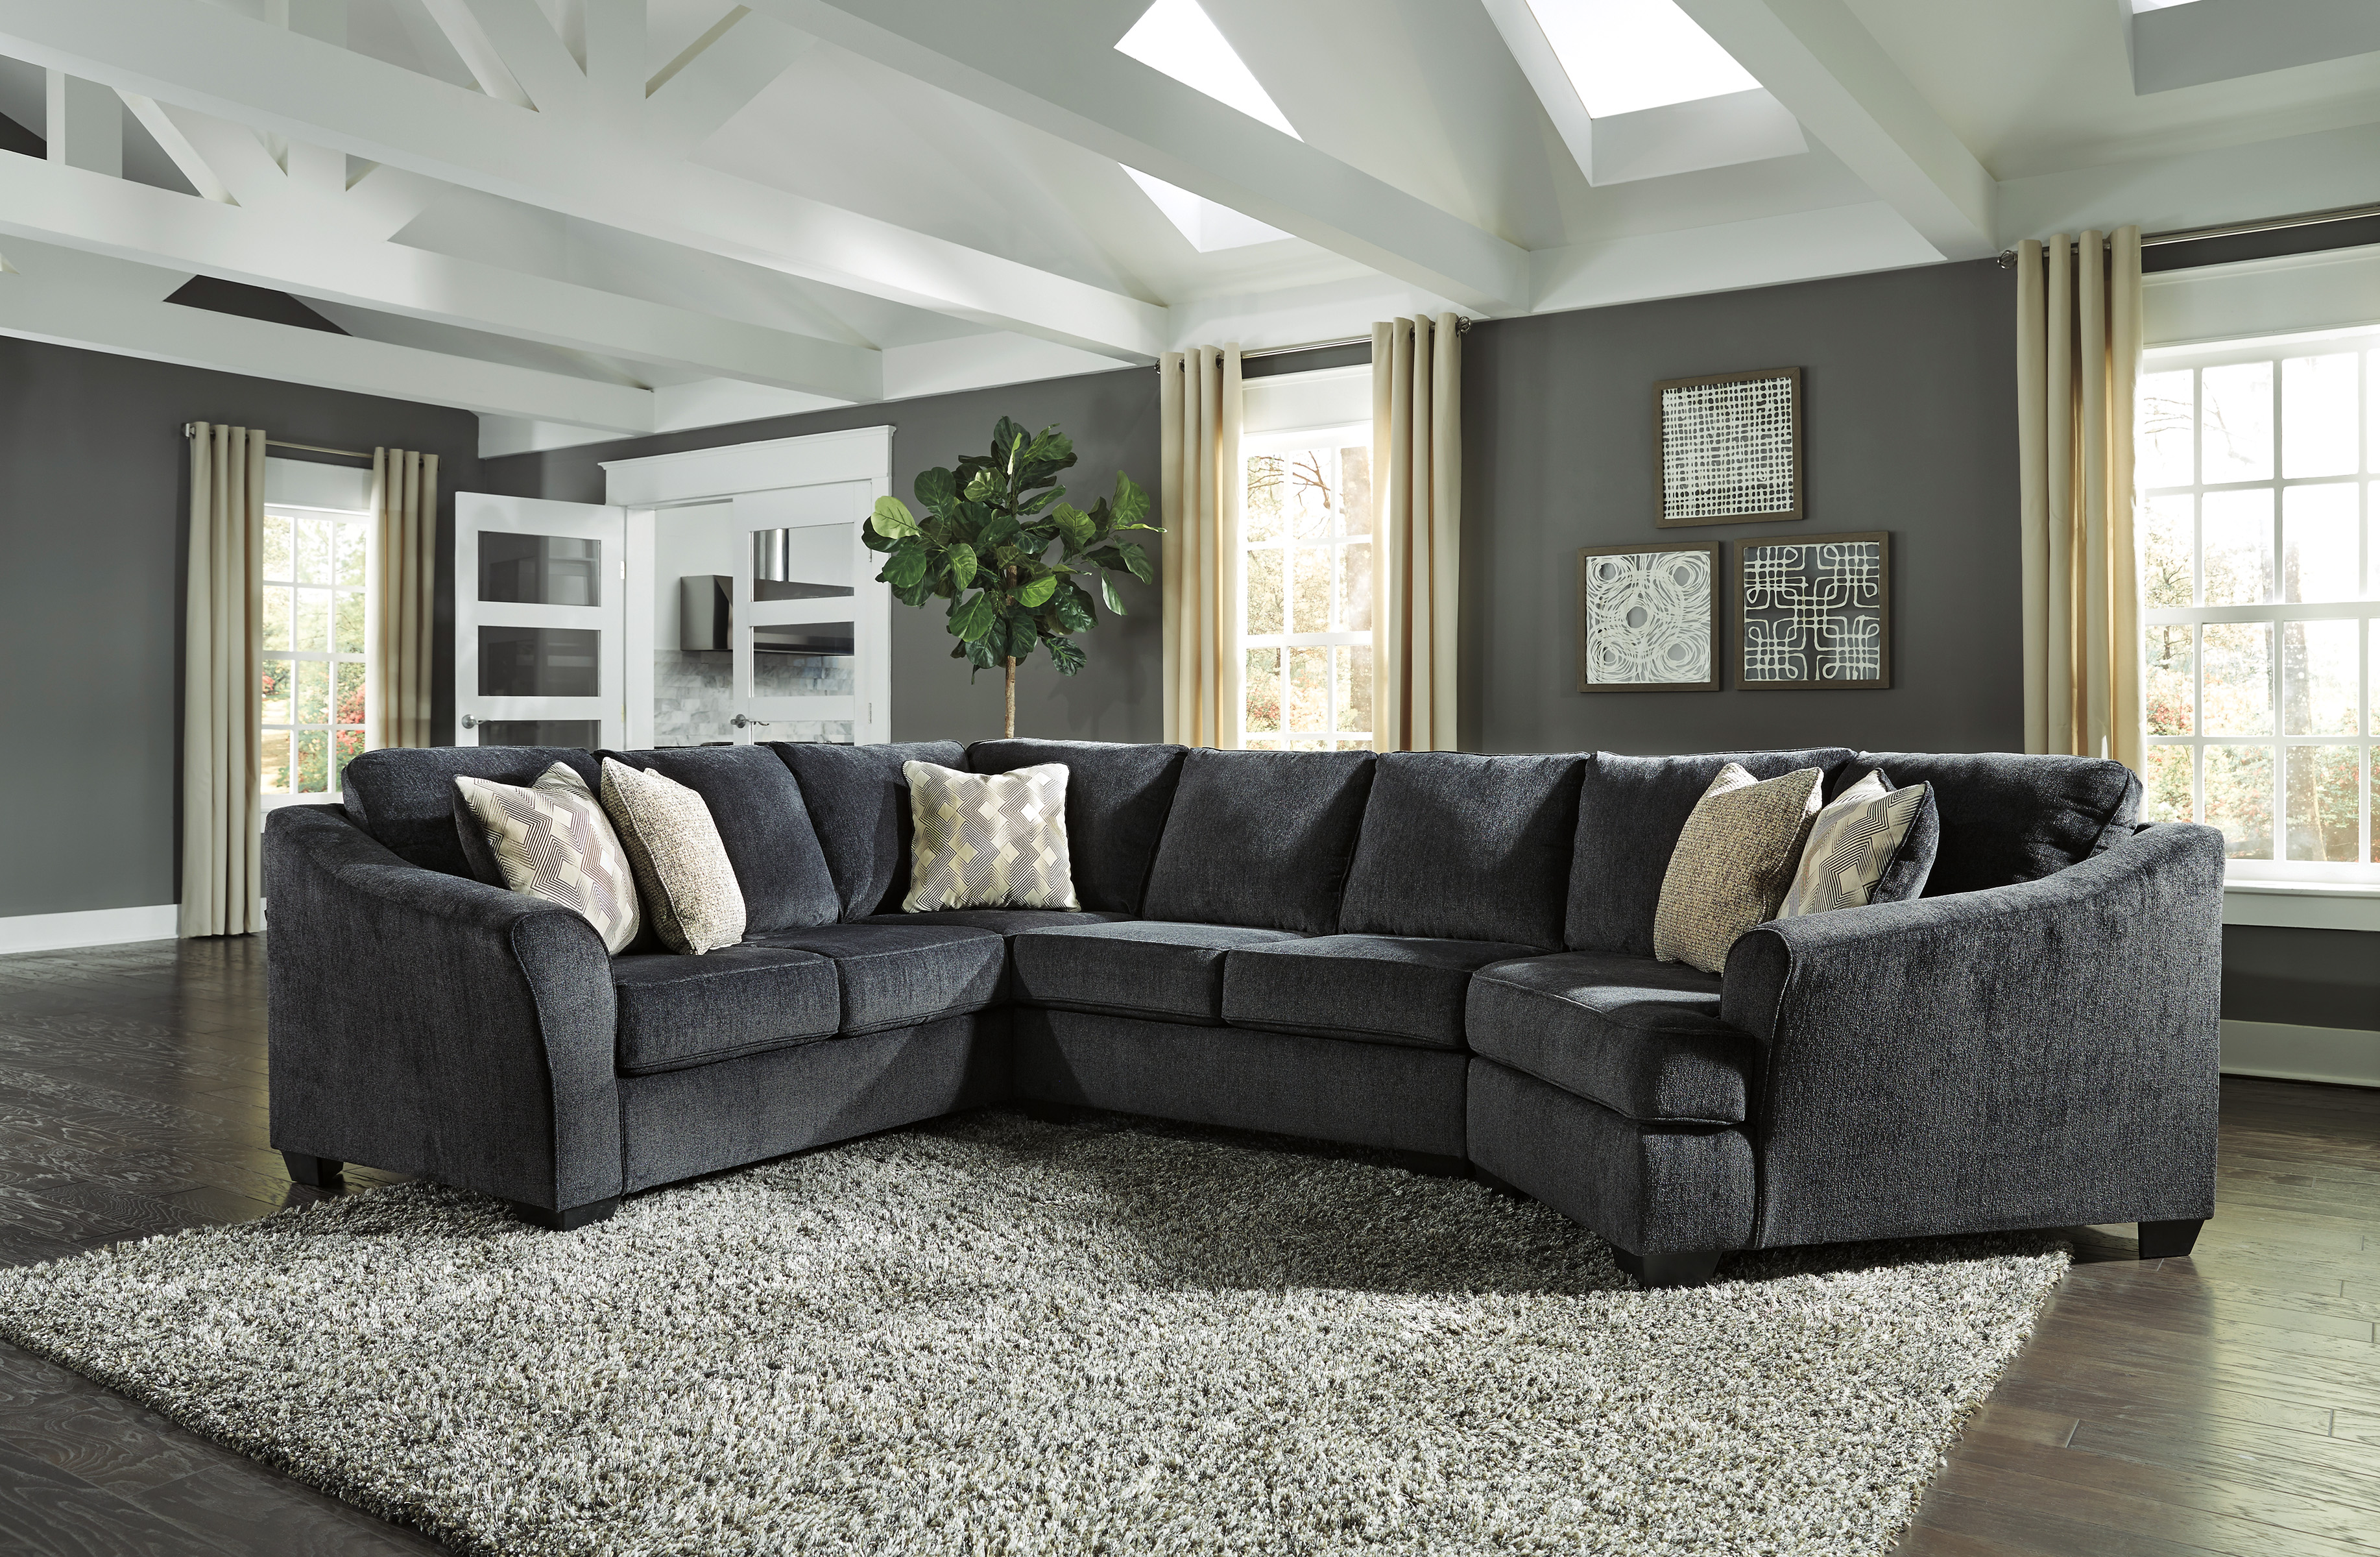 Eltmann Slate Sectional With Right Side Cuddler  / $30.59 A Week